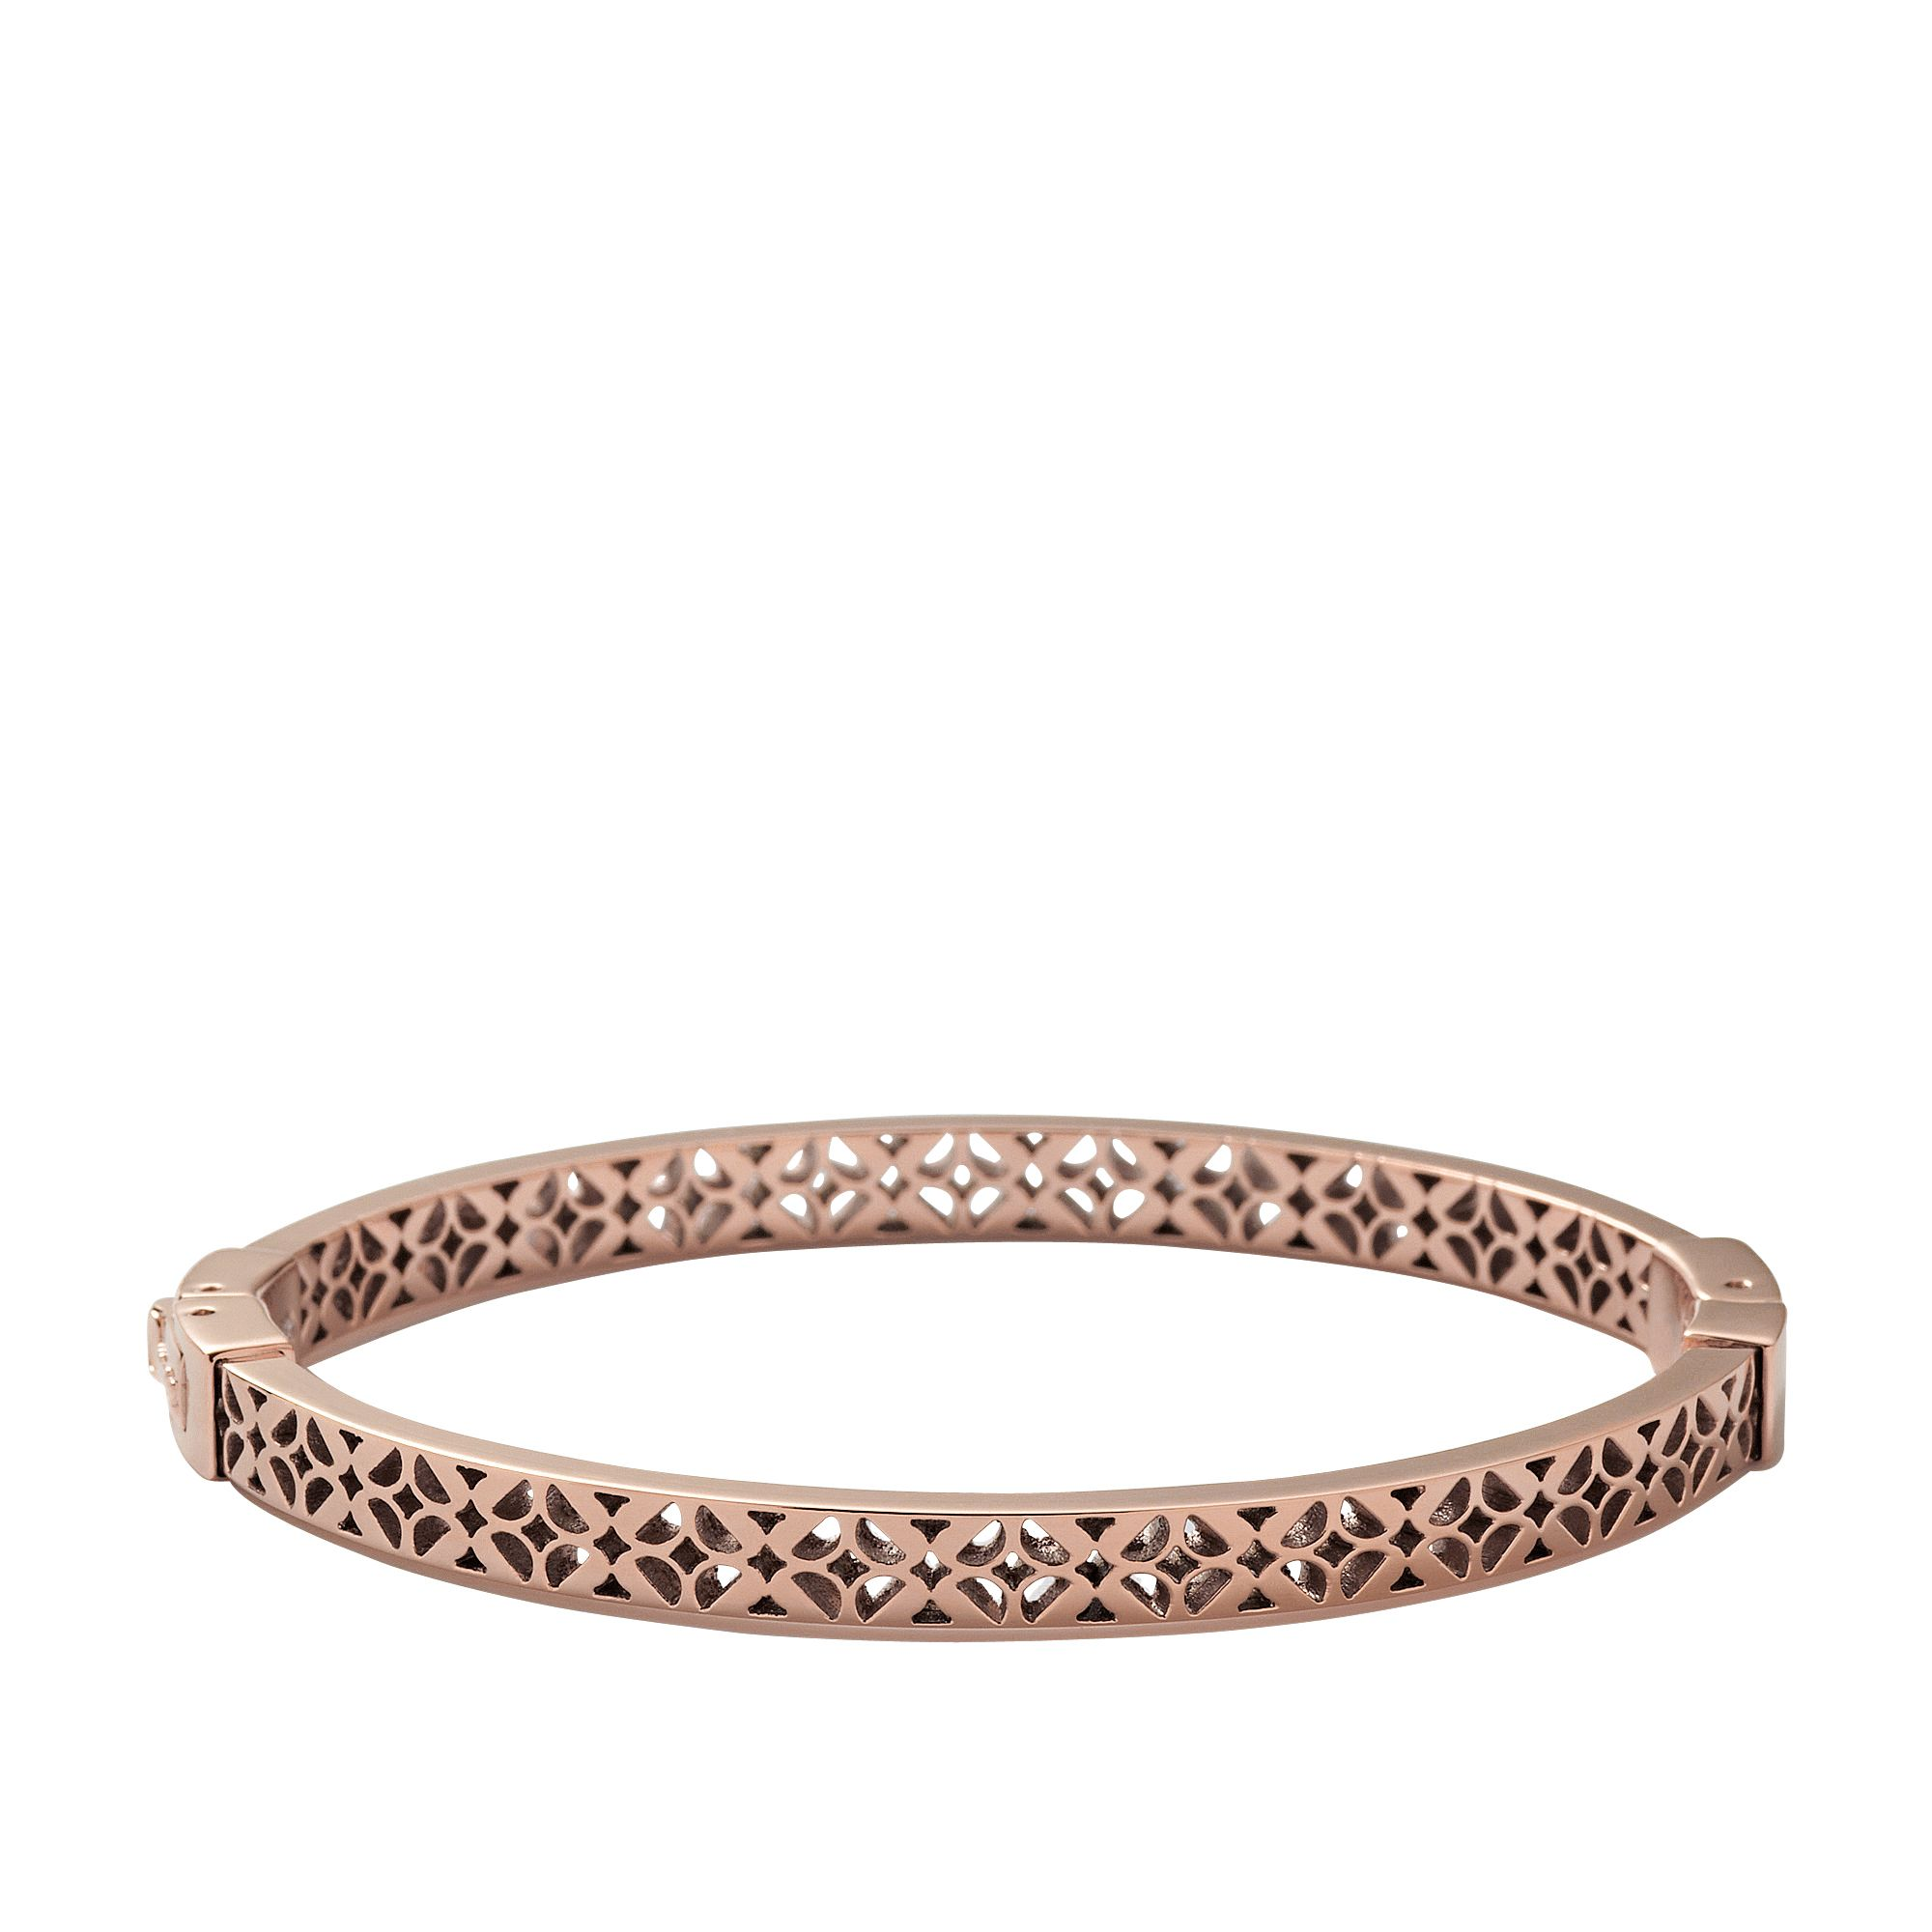 Jf00099791 Ladies rose gold iconic Bangle bracele